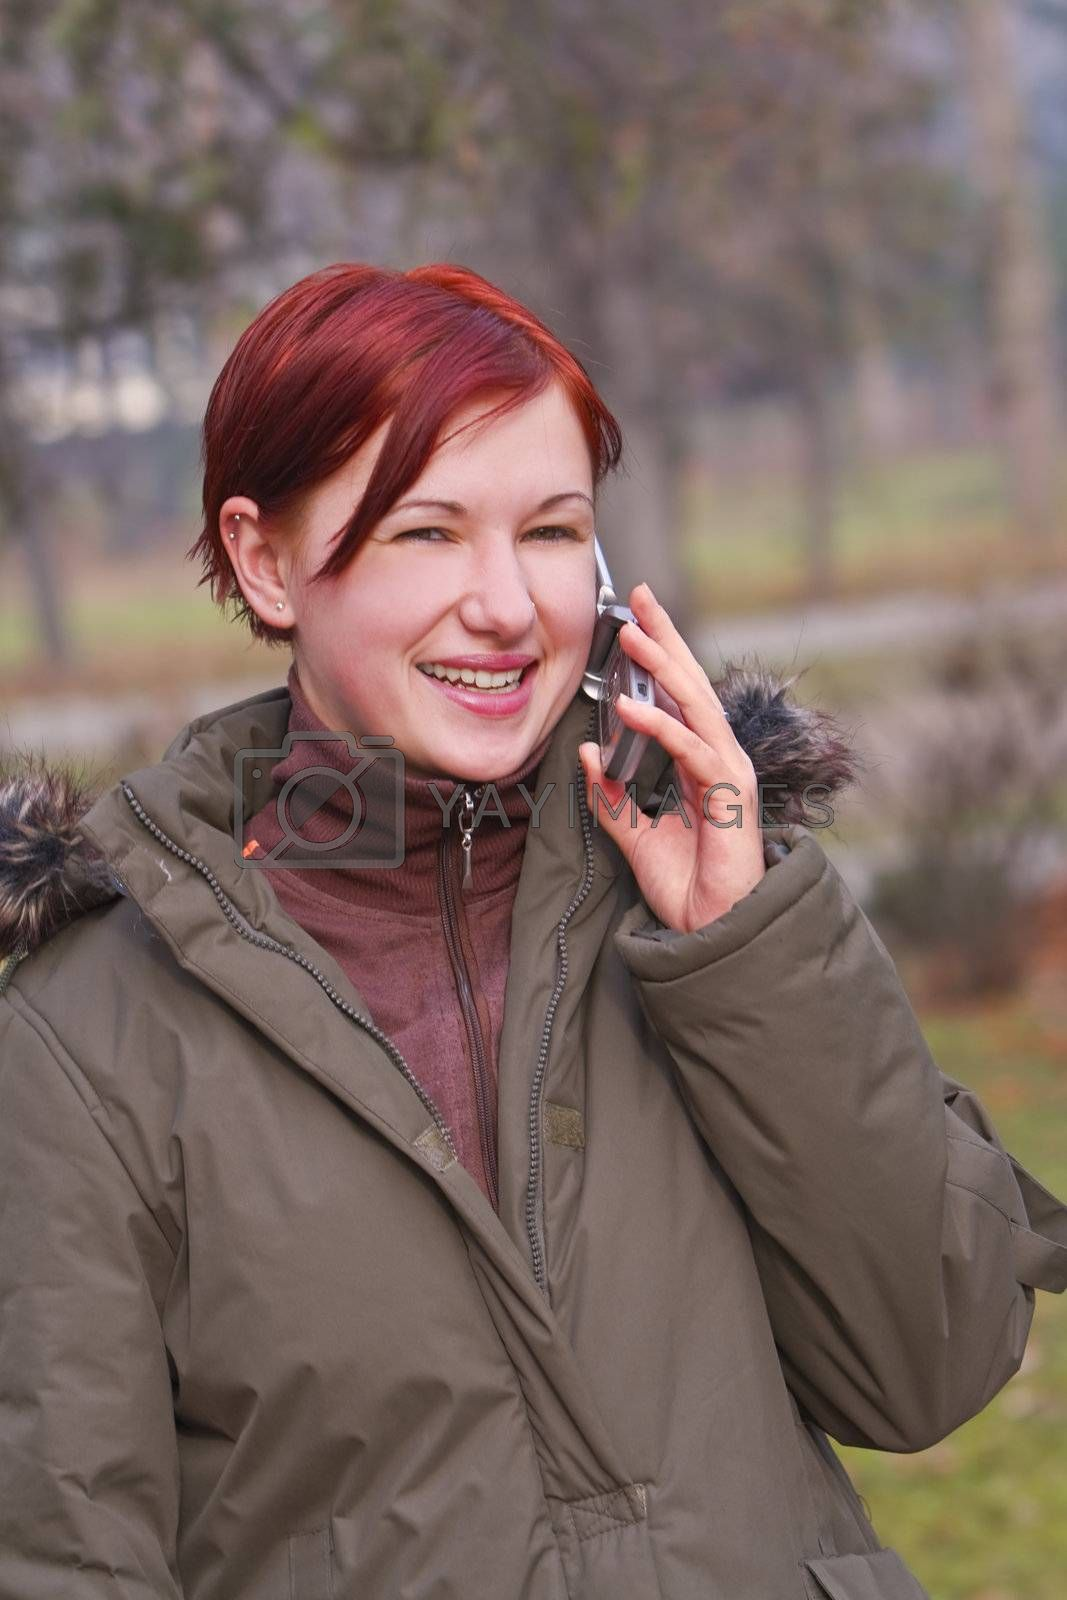 Smiling redheaded girl using a mobile phone in a park.Shot with Canon 70-200mm f/2.8L IS USM